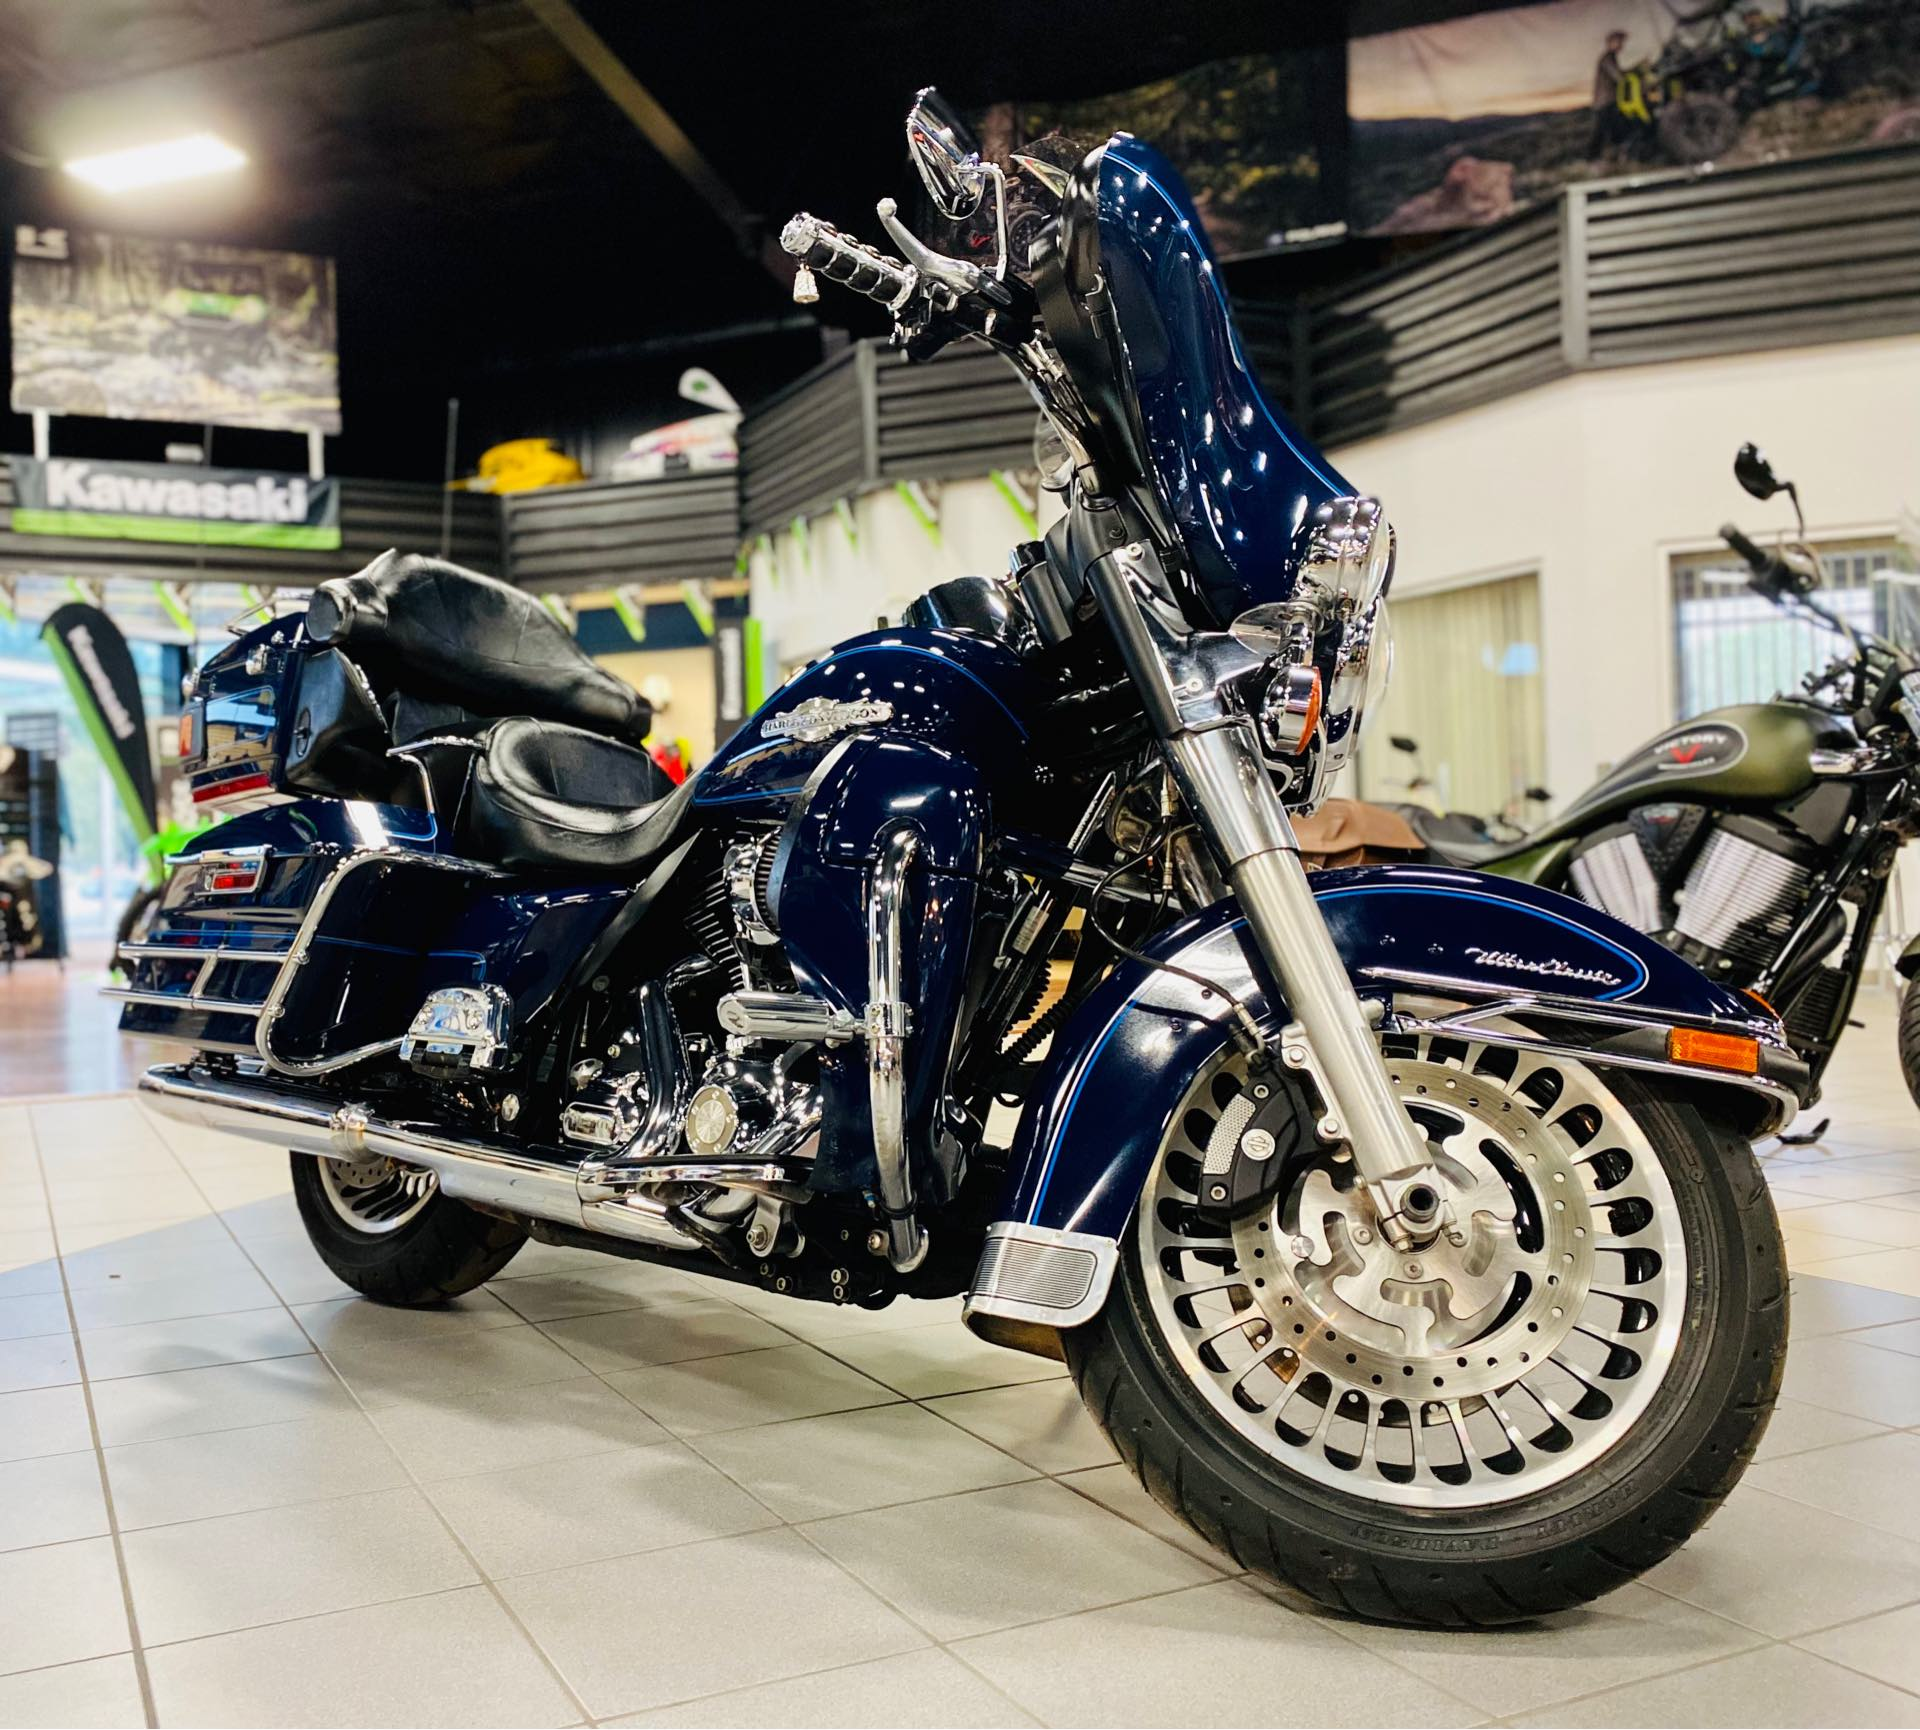 2009 Harley-Davidson Electra Glide Ultra Classic at Rod's Ride On Powersports